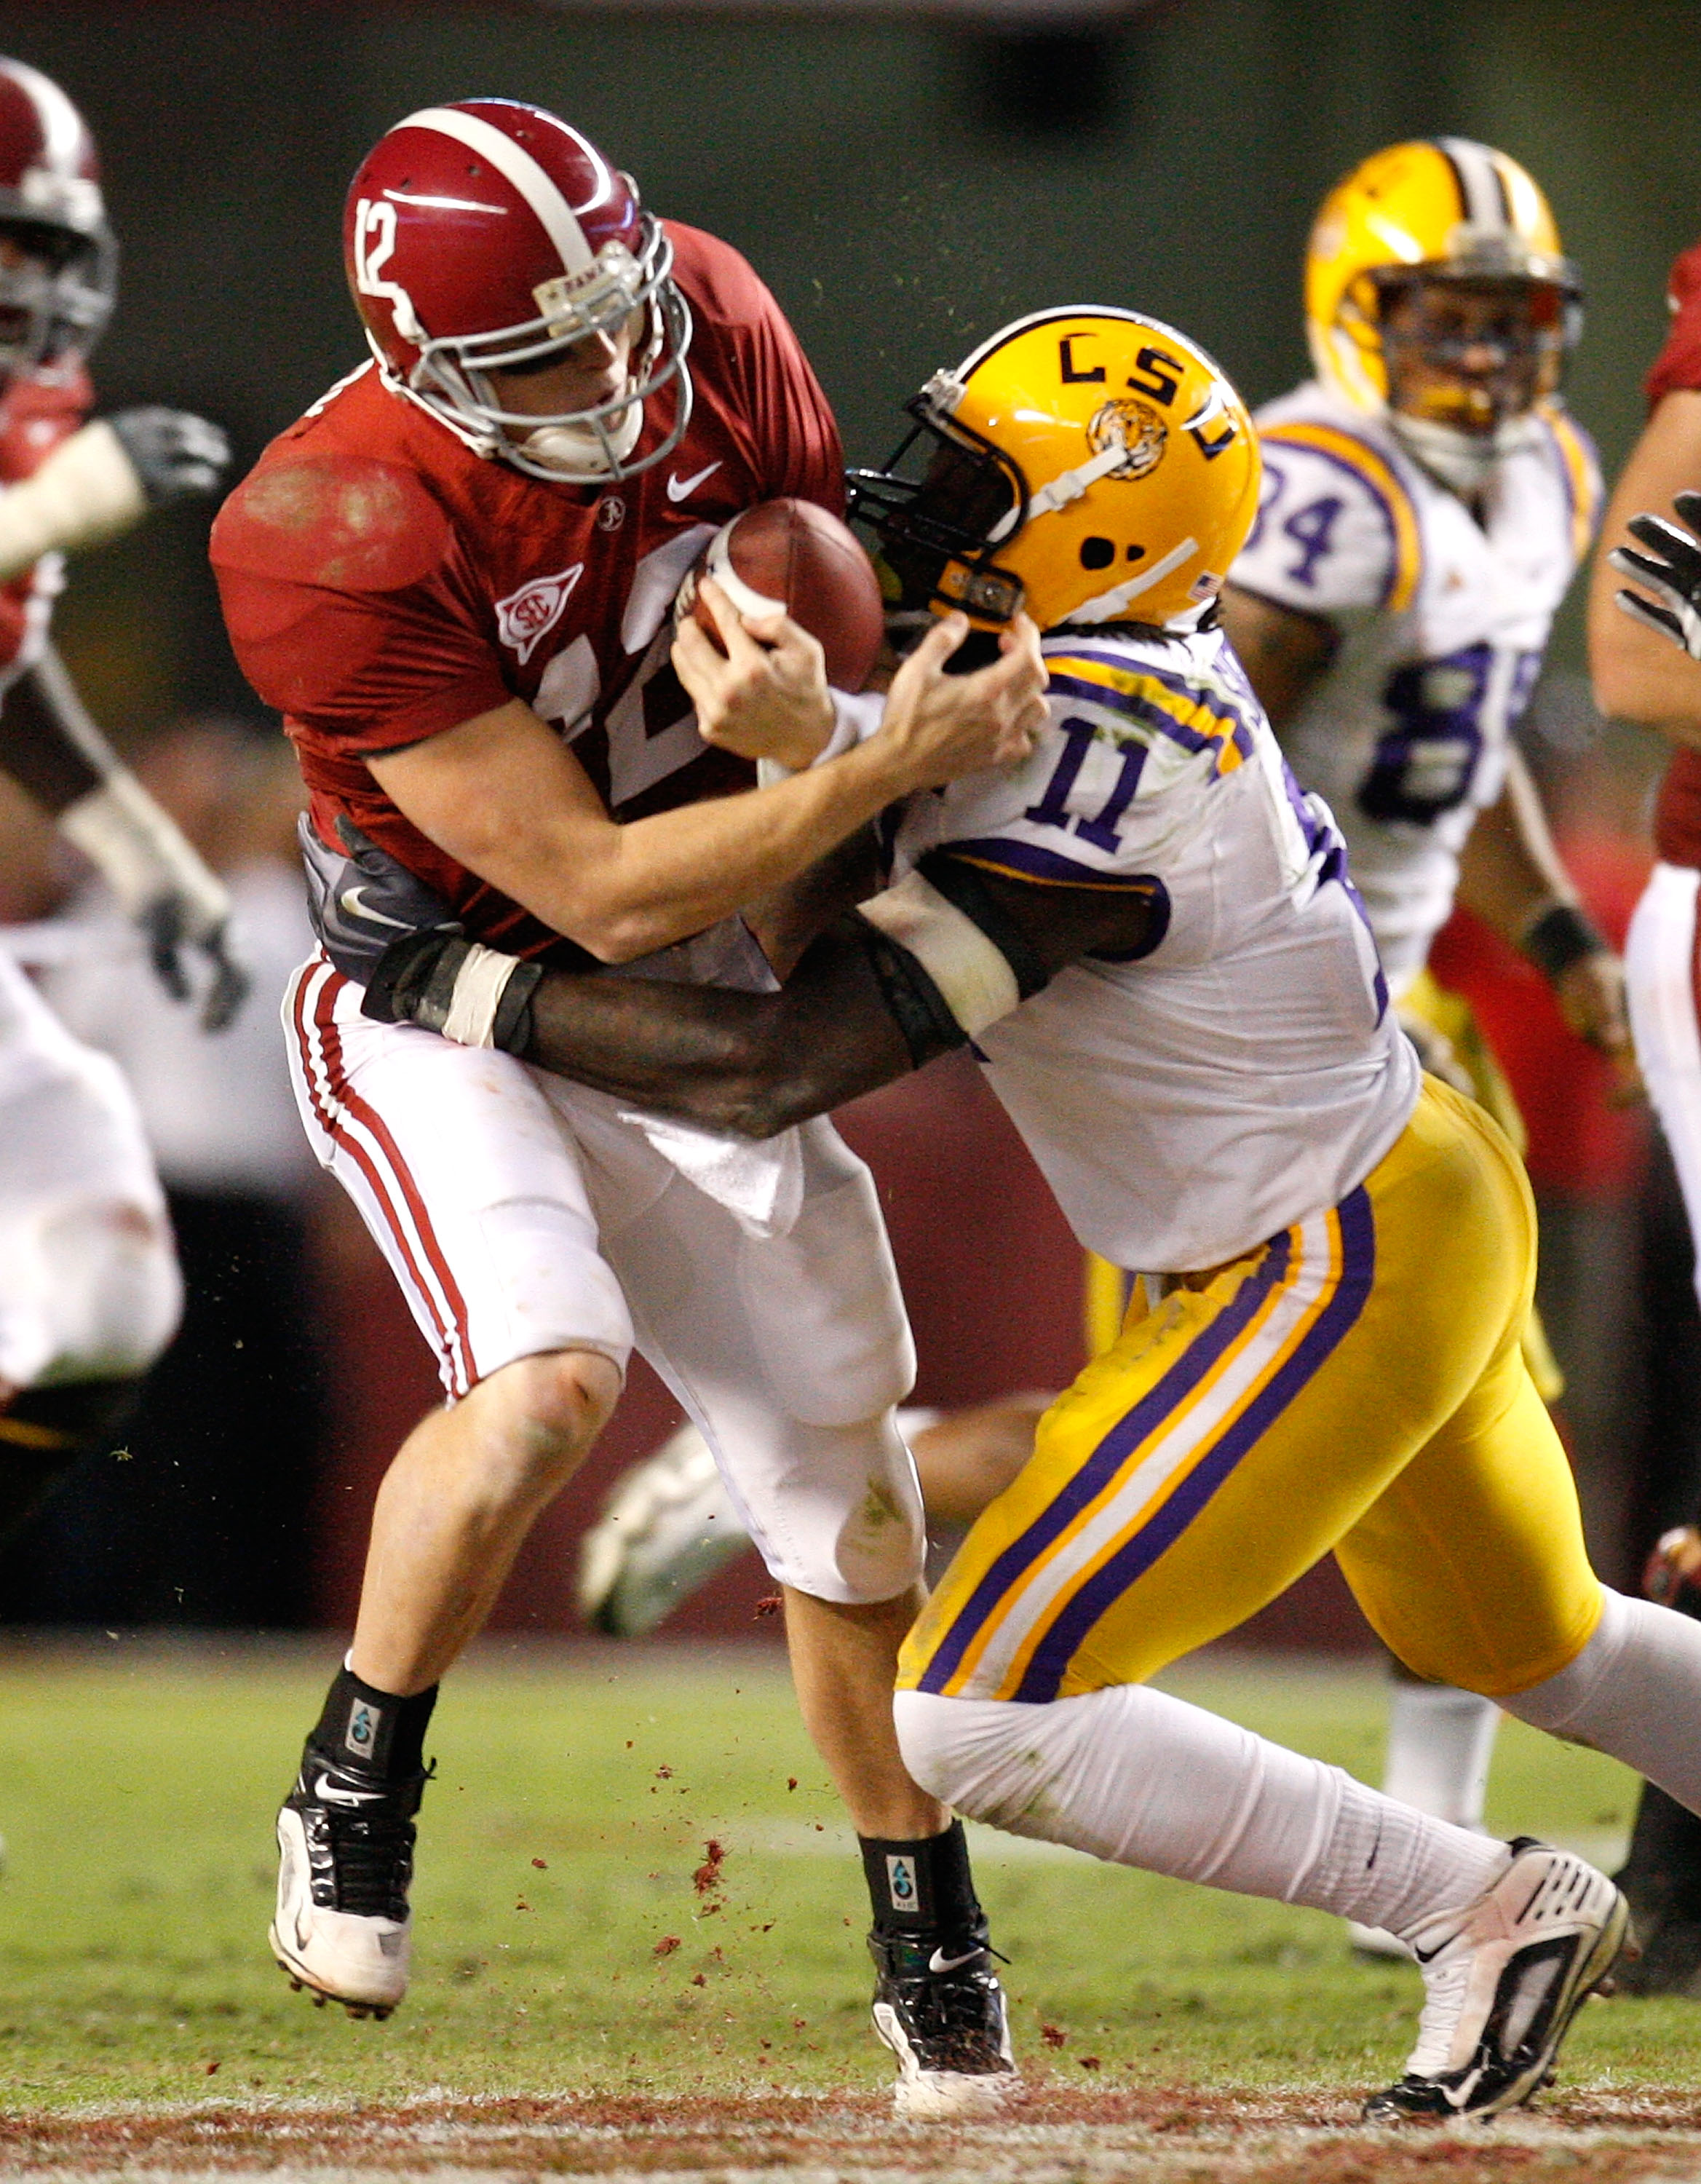 TUSCALOOSA, AL - NOVEMBER 07:  Quarterback Greg McElroy #12 of the Alabama Crimson Tide is tackled by Kelvin Sheppard #11 of the Louisiana State University Tigers at Bryant-Denny Stadium on November 7, 2009 in Tuscaloosa, Alabama.  (Photo by Kevin C. Cox/